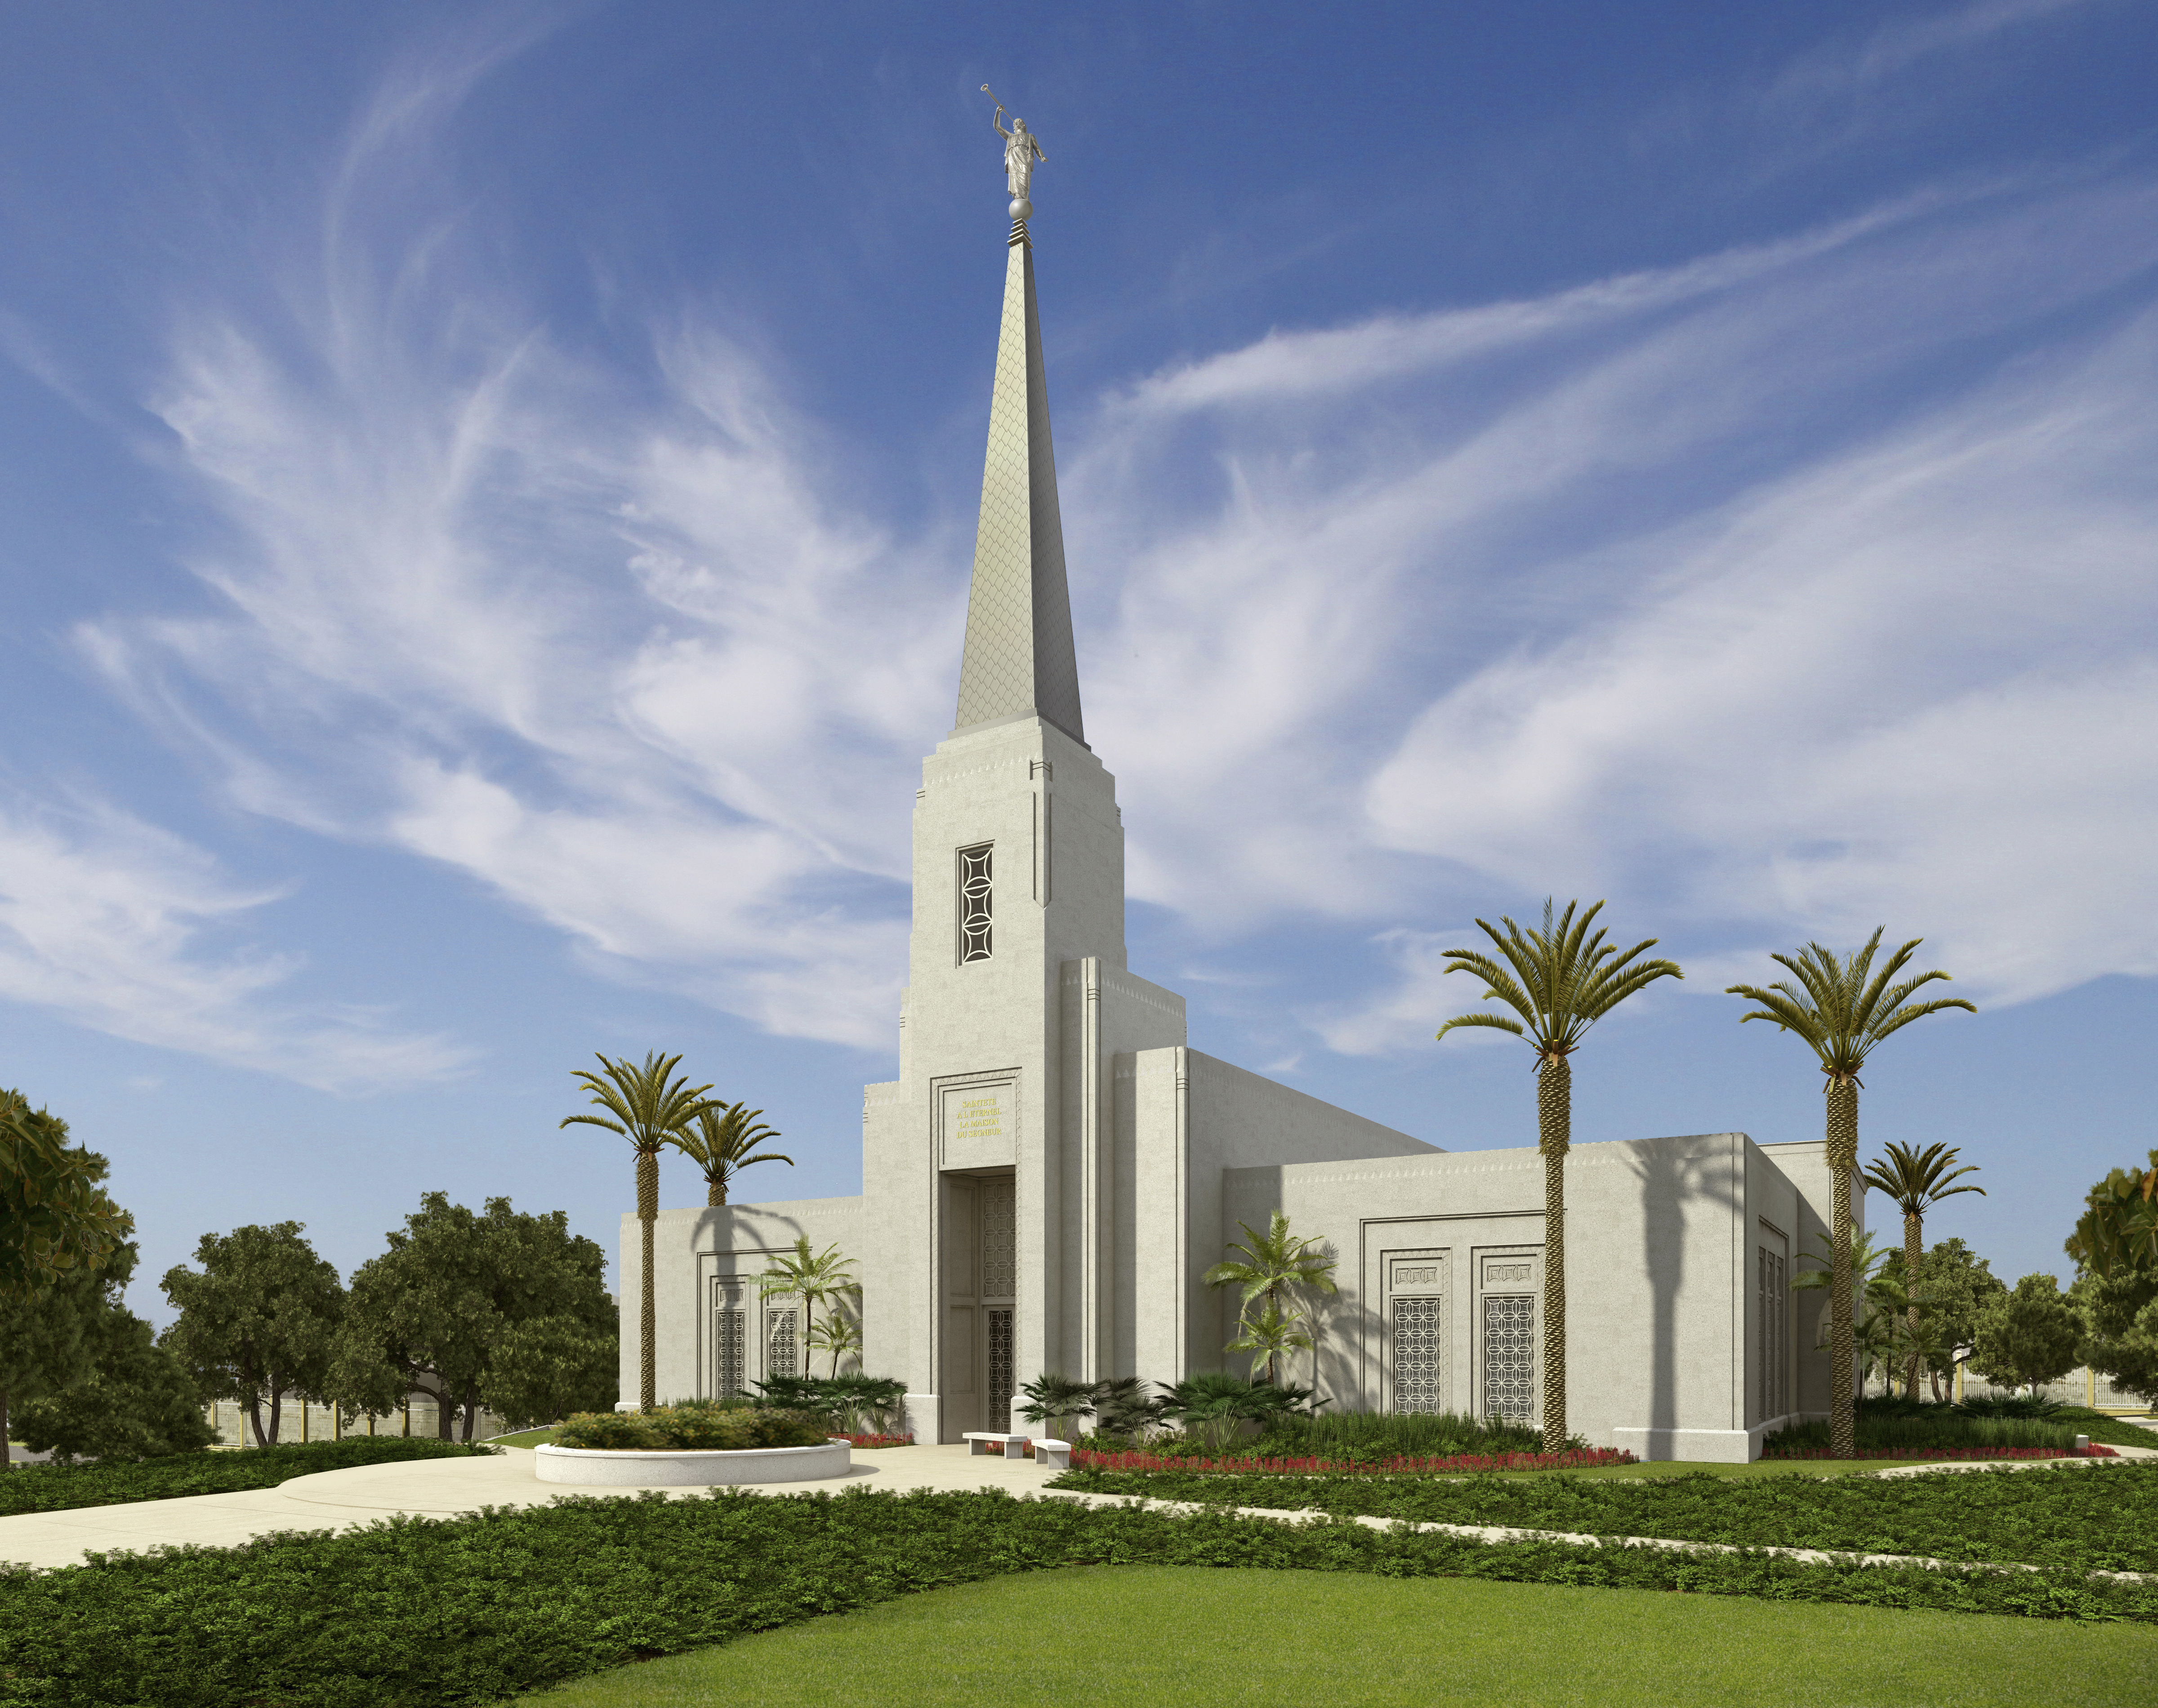 An artist's rendering of the exterior of the Abidjan Ivory Coast Temple.